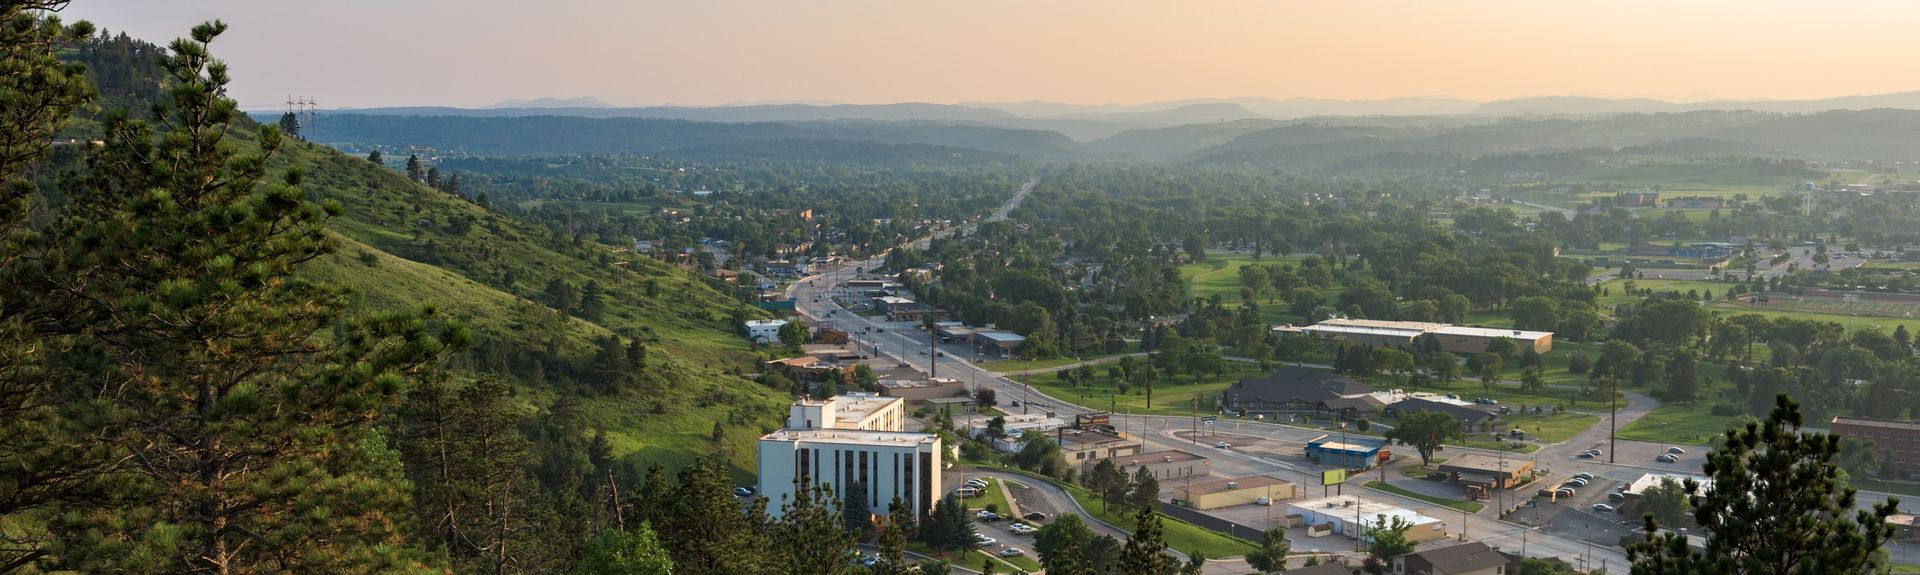 Rapid City, South Dakota, United States of America